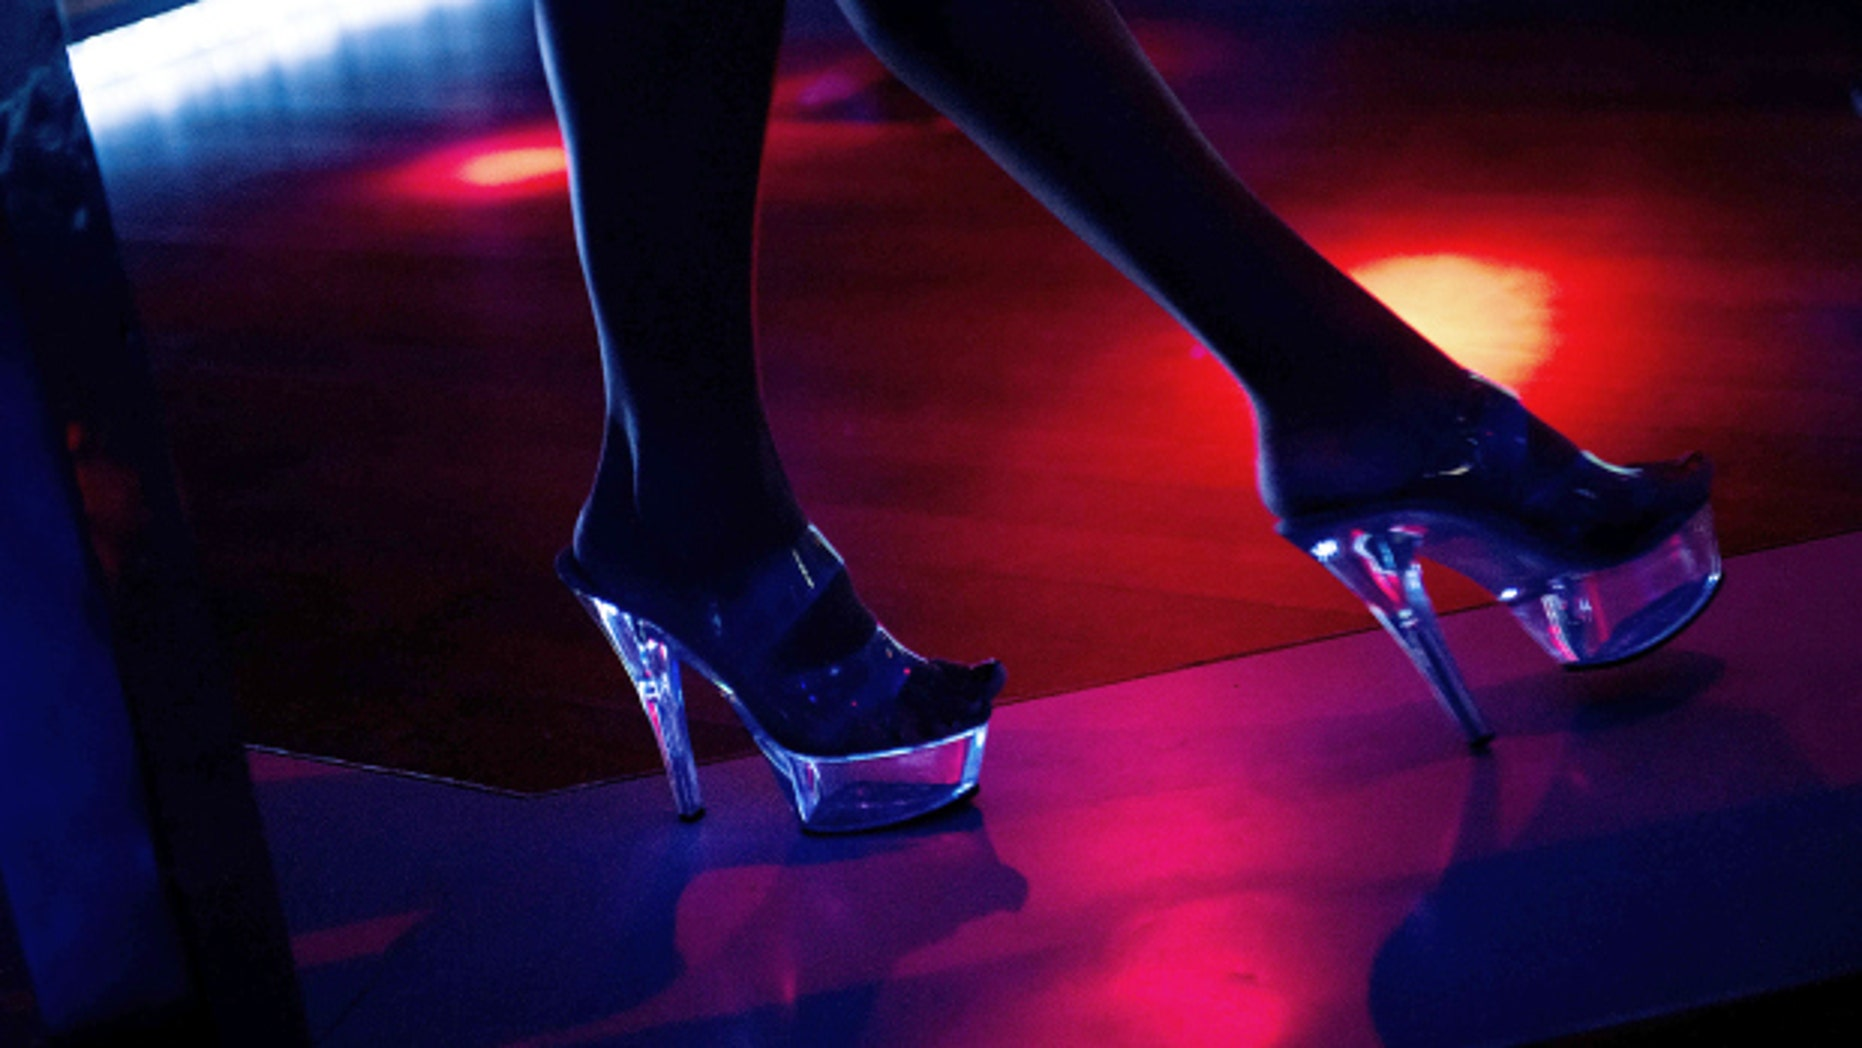 """A dancer performs at the Mons Venus Club on August 23, 2012 in Tampa, Florida. Despite only having 30 strip clubs Tampa has earned the title of """"Strip Club Capital of the World."""" The Republican Party will hold its 2012 national convention in Tampa, August 27-30.    AFP PHOTO/Brendan SMIALOWSKI        (Photo credit should read BRENDAN SMIALOWSKI/AFP/GettyImages)"""